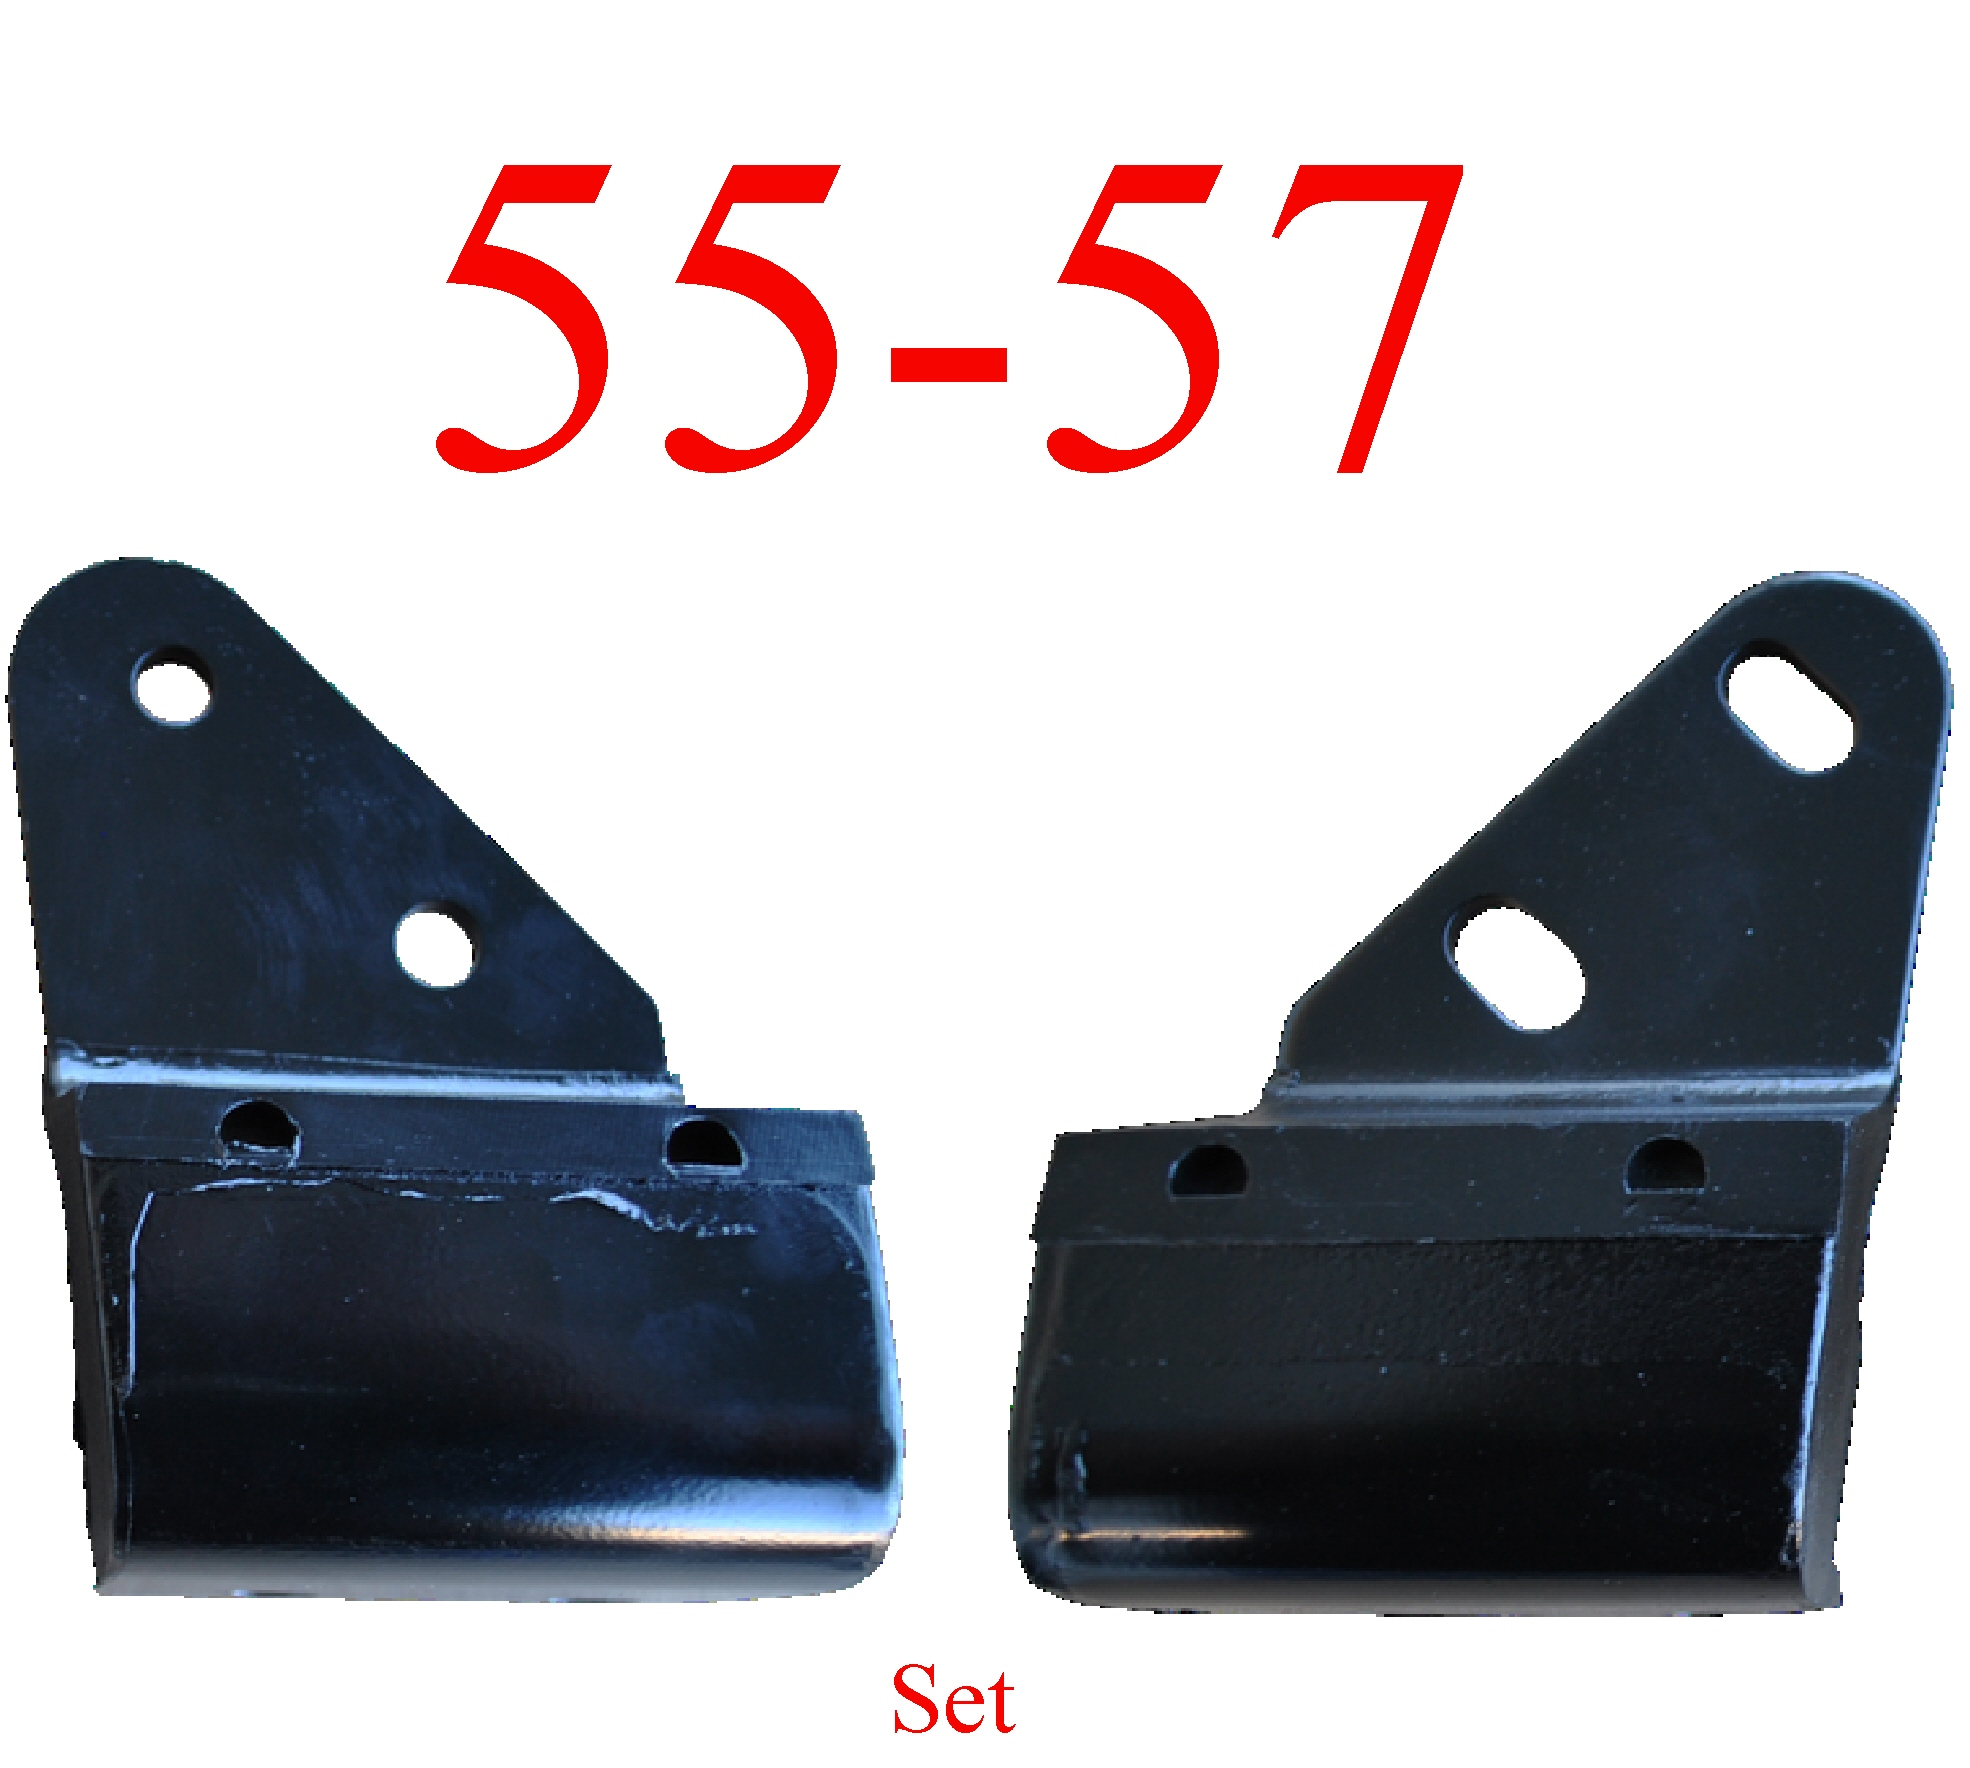 55-57 Chevy Bel Air 2Pc Transmission Mount Set